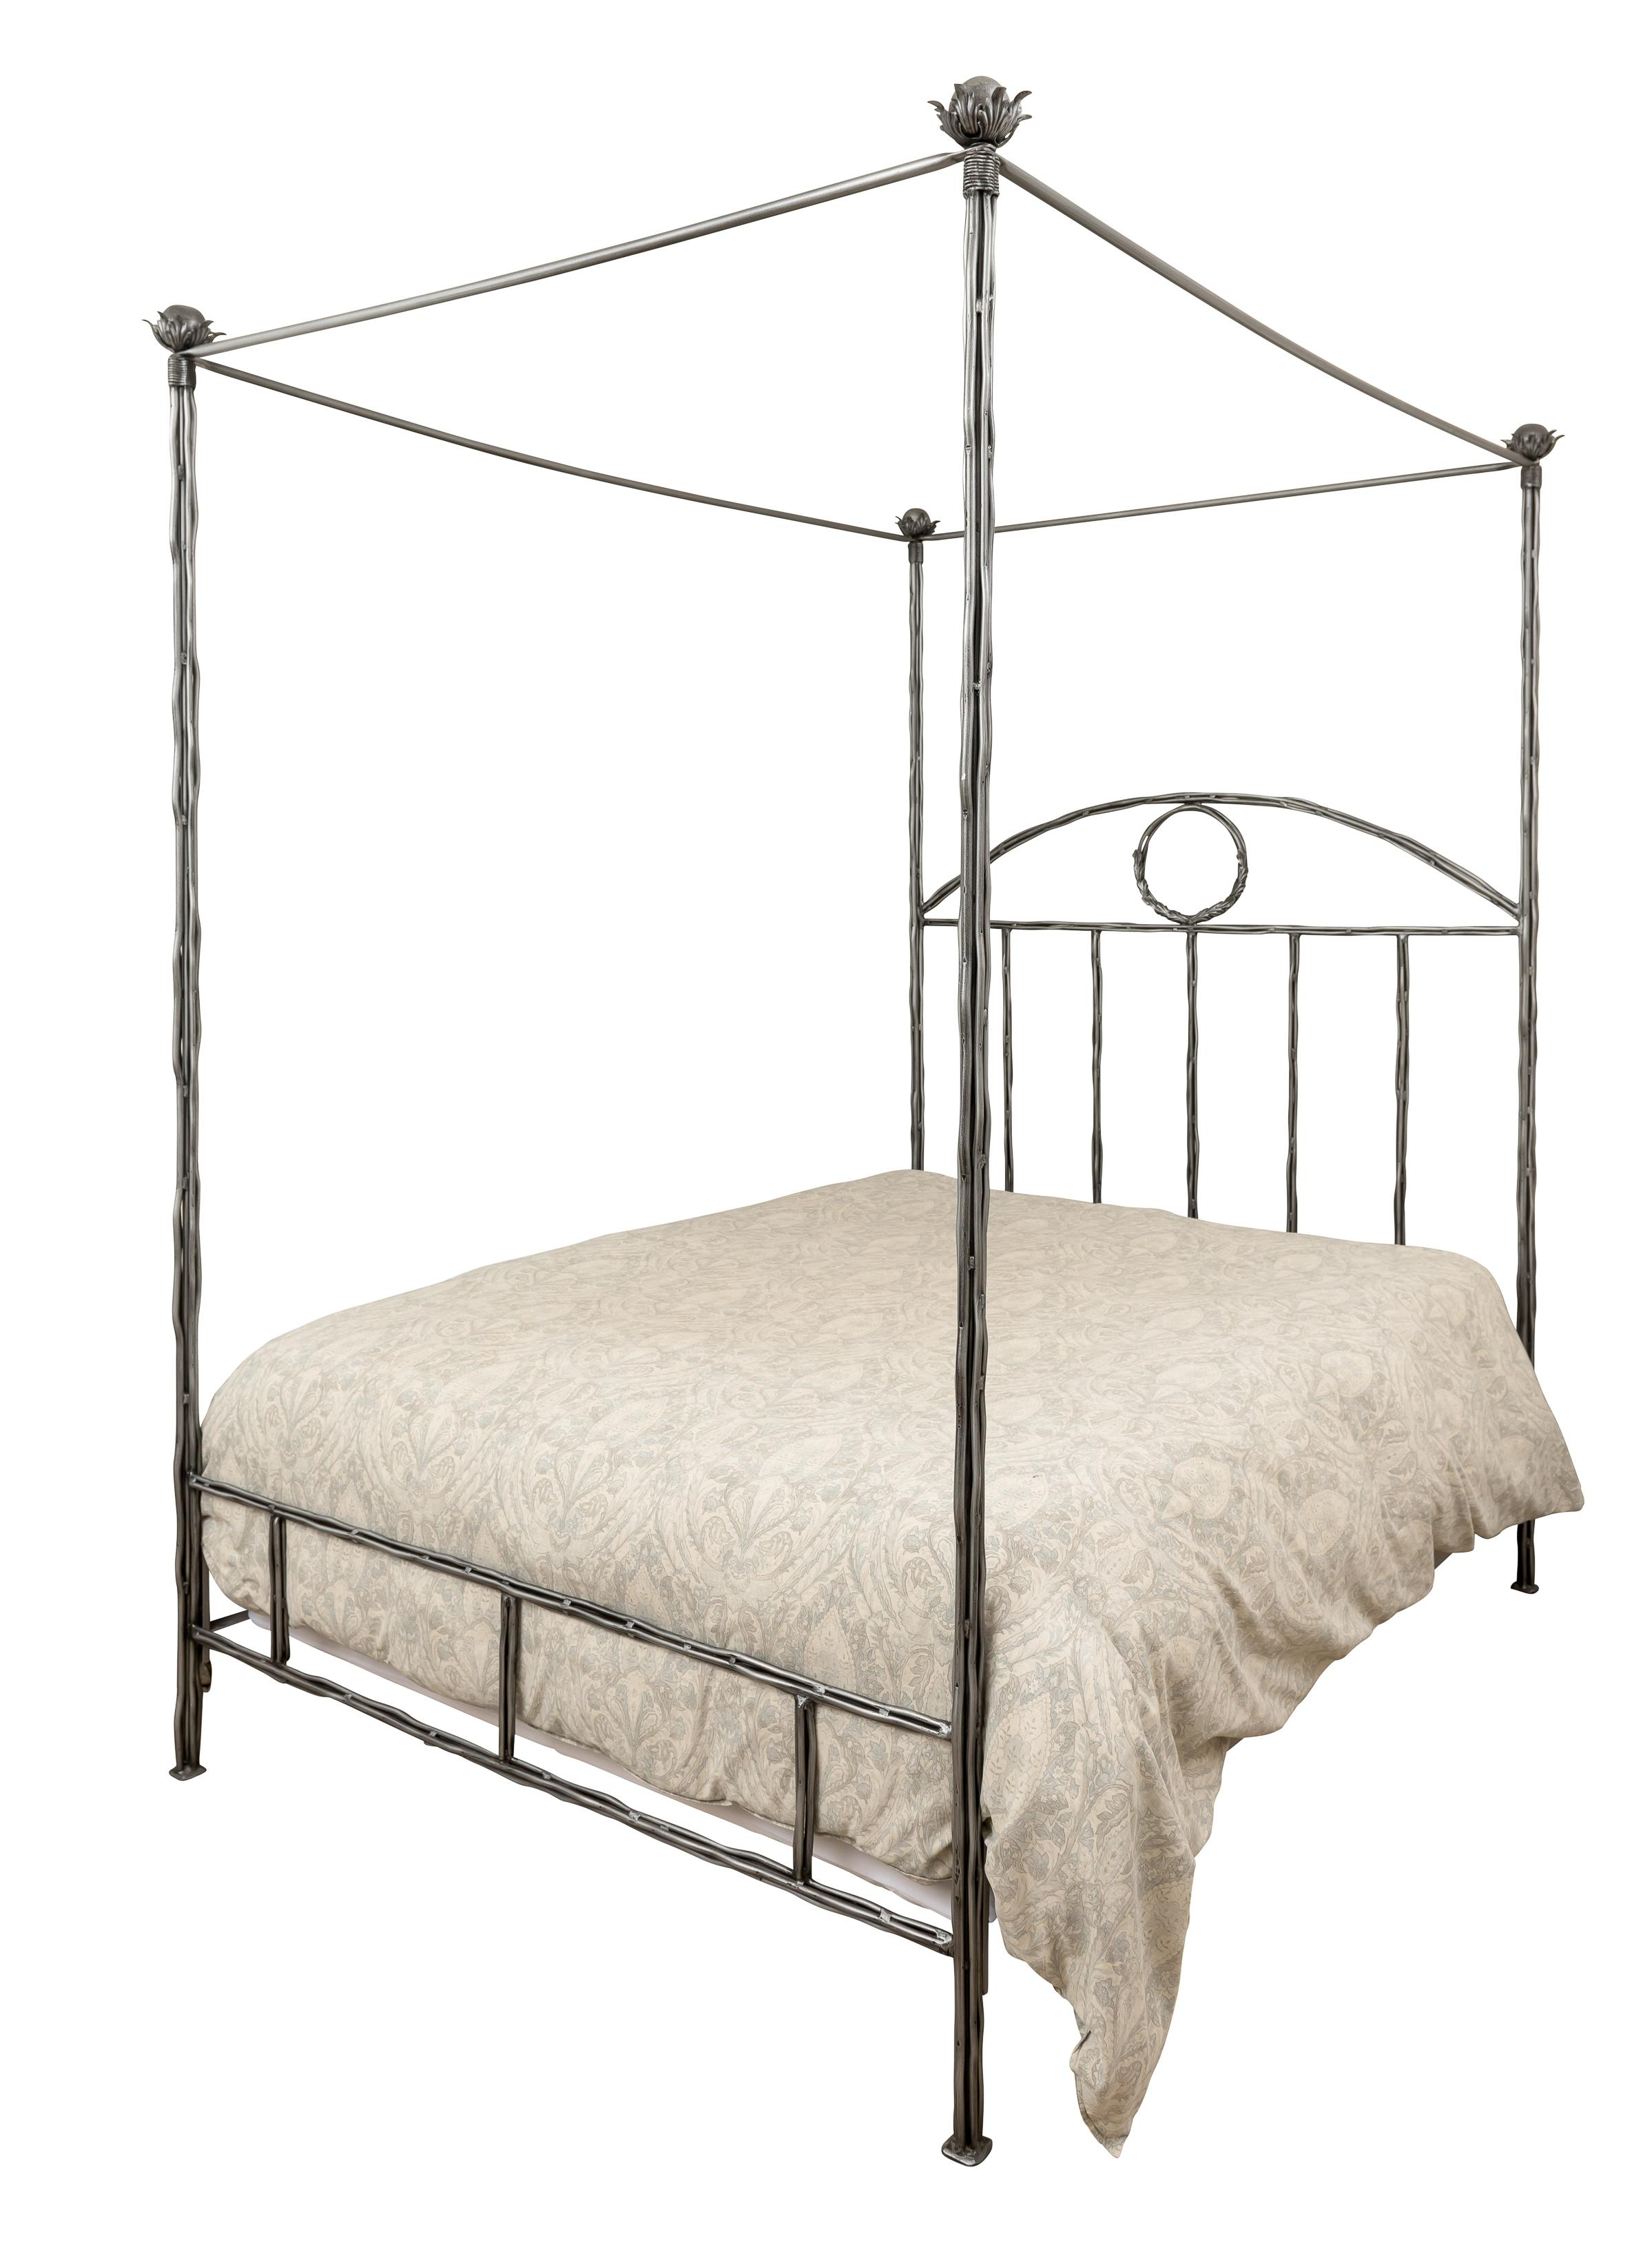 Romantic Framed Metal Canopy Queen Bed Chairish